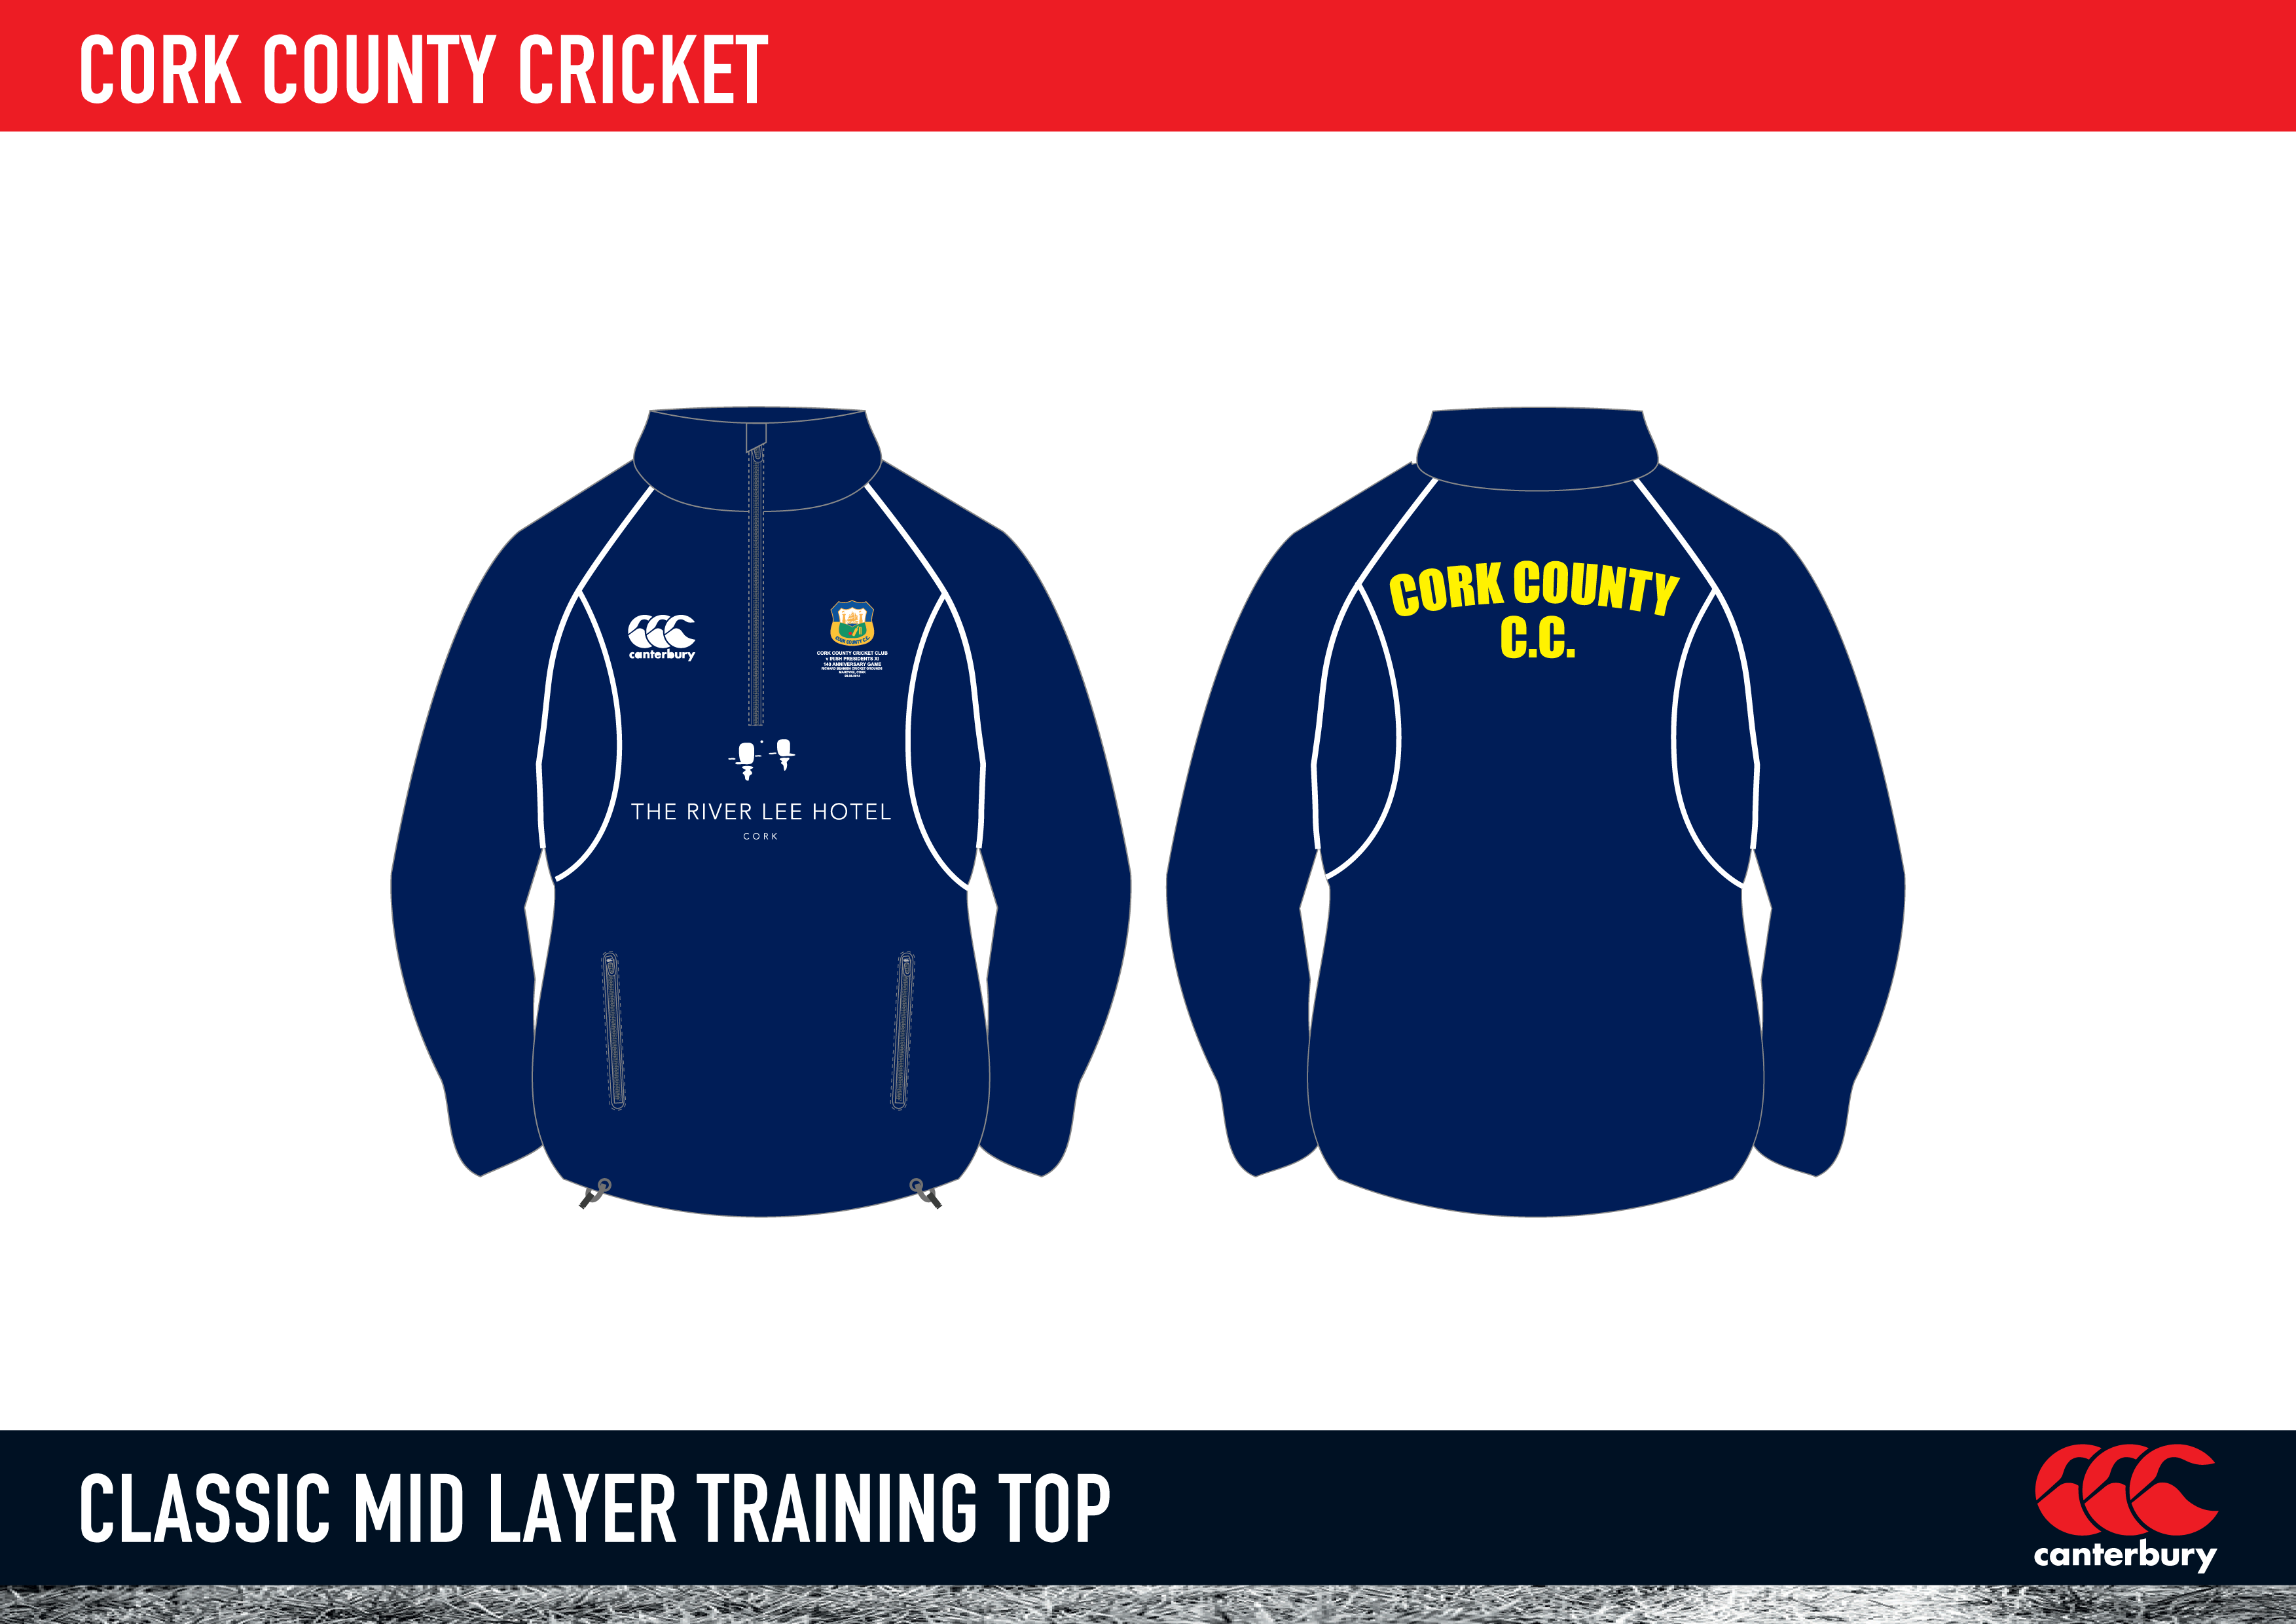 cork county cricket classic mid layer training top 2015 « cork